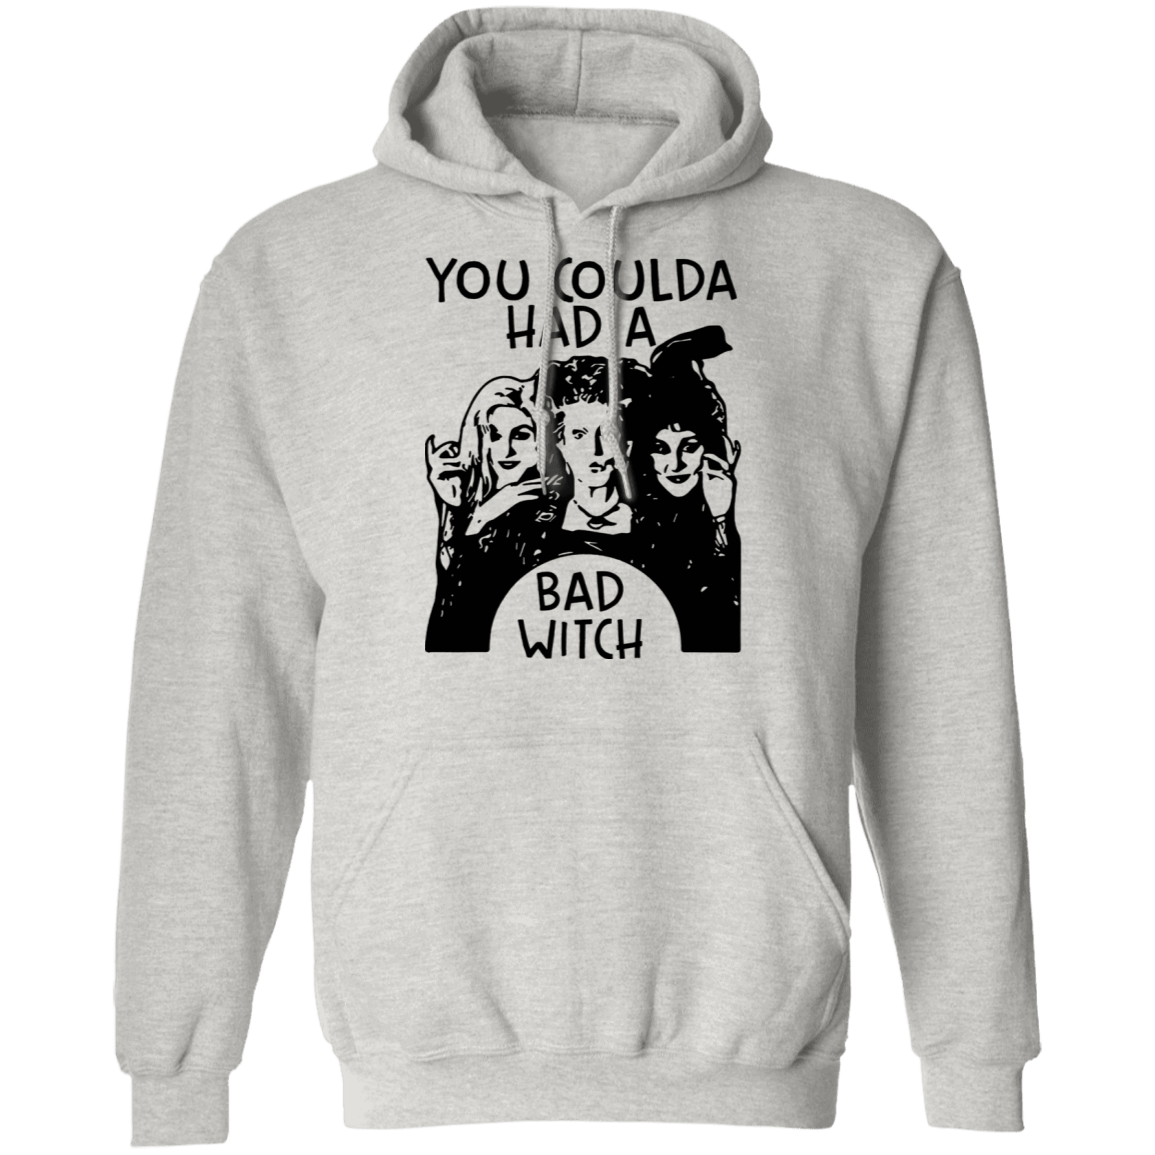 Hocus Pocus You Coulda Had A Bad Witch T-Shirts, Hoodies, Tank 541-4748-79808440-23071 - Tee Ript